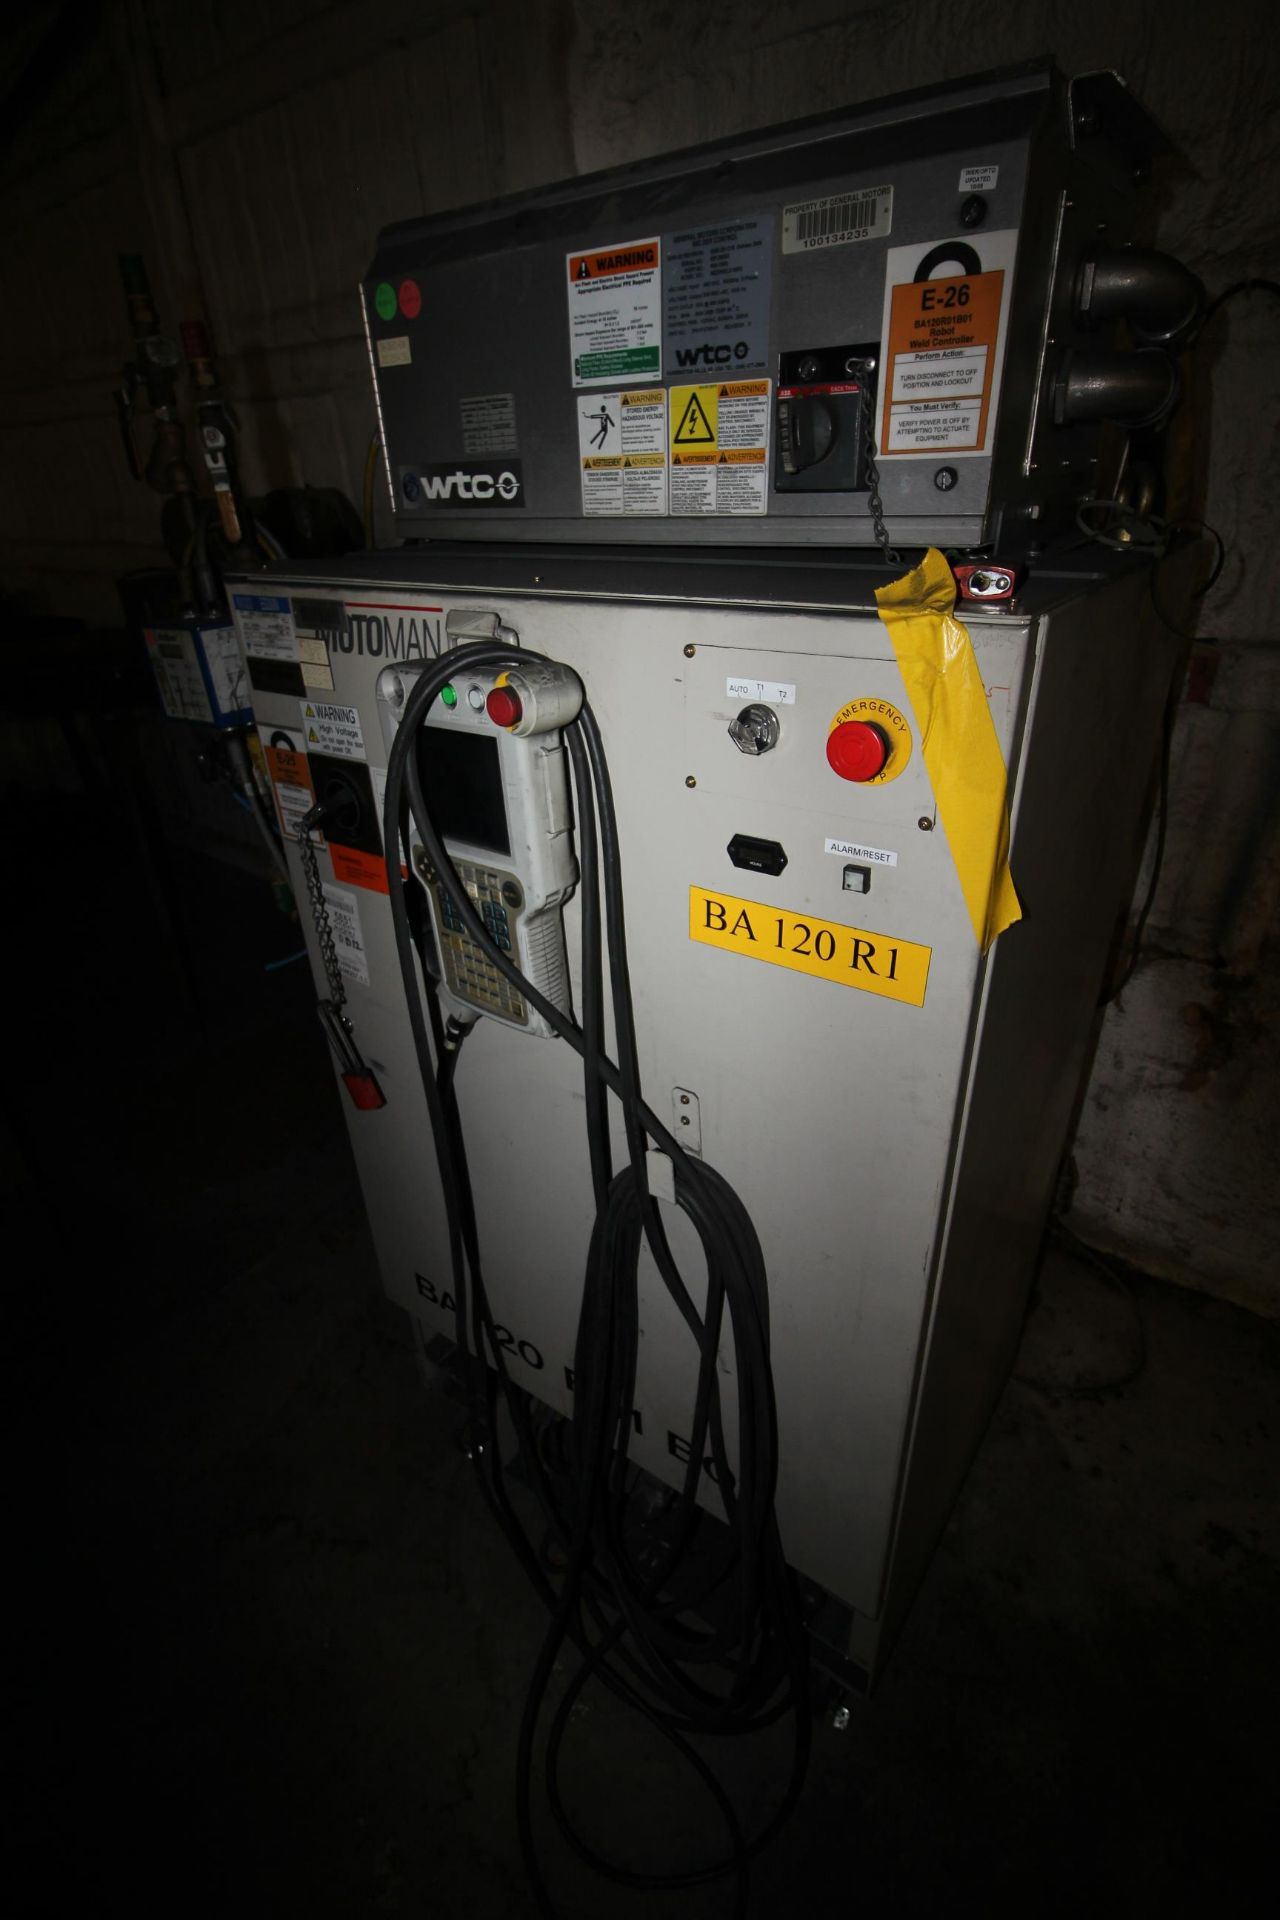 MOTOMAN ROBOT ES200N, NX100 CONTROL, SN S5M259-1-2, YEAR 2006, CABLES AND TEACH PENDANT - Image 3 of 11